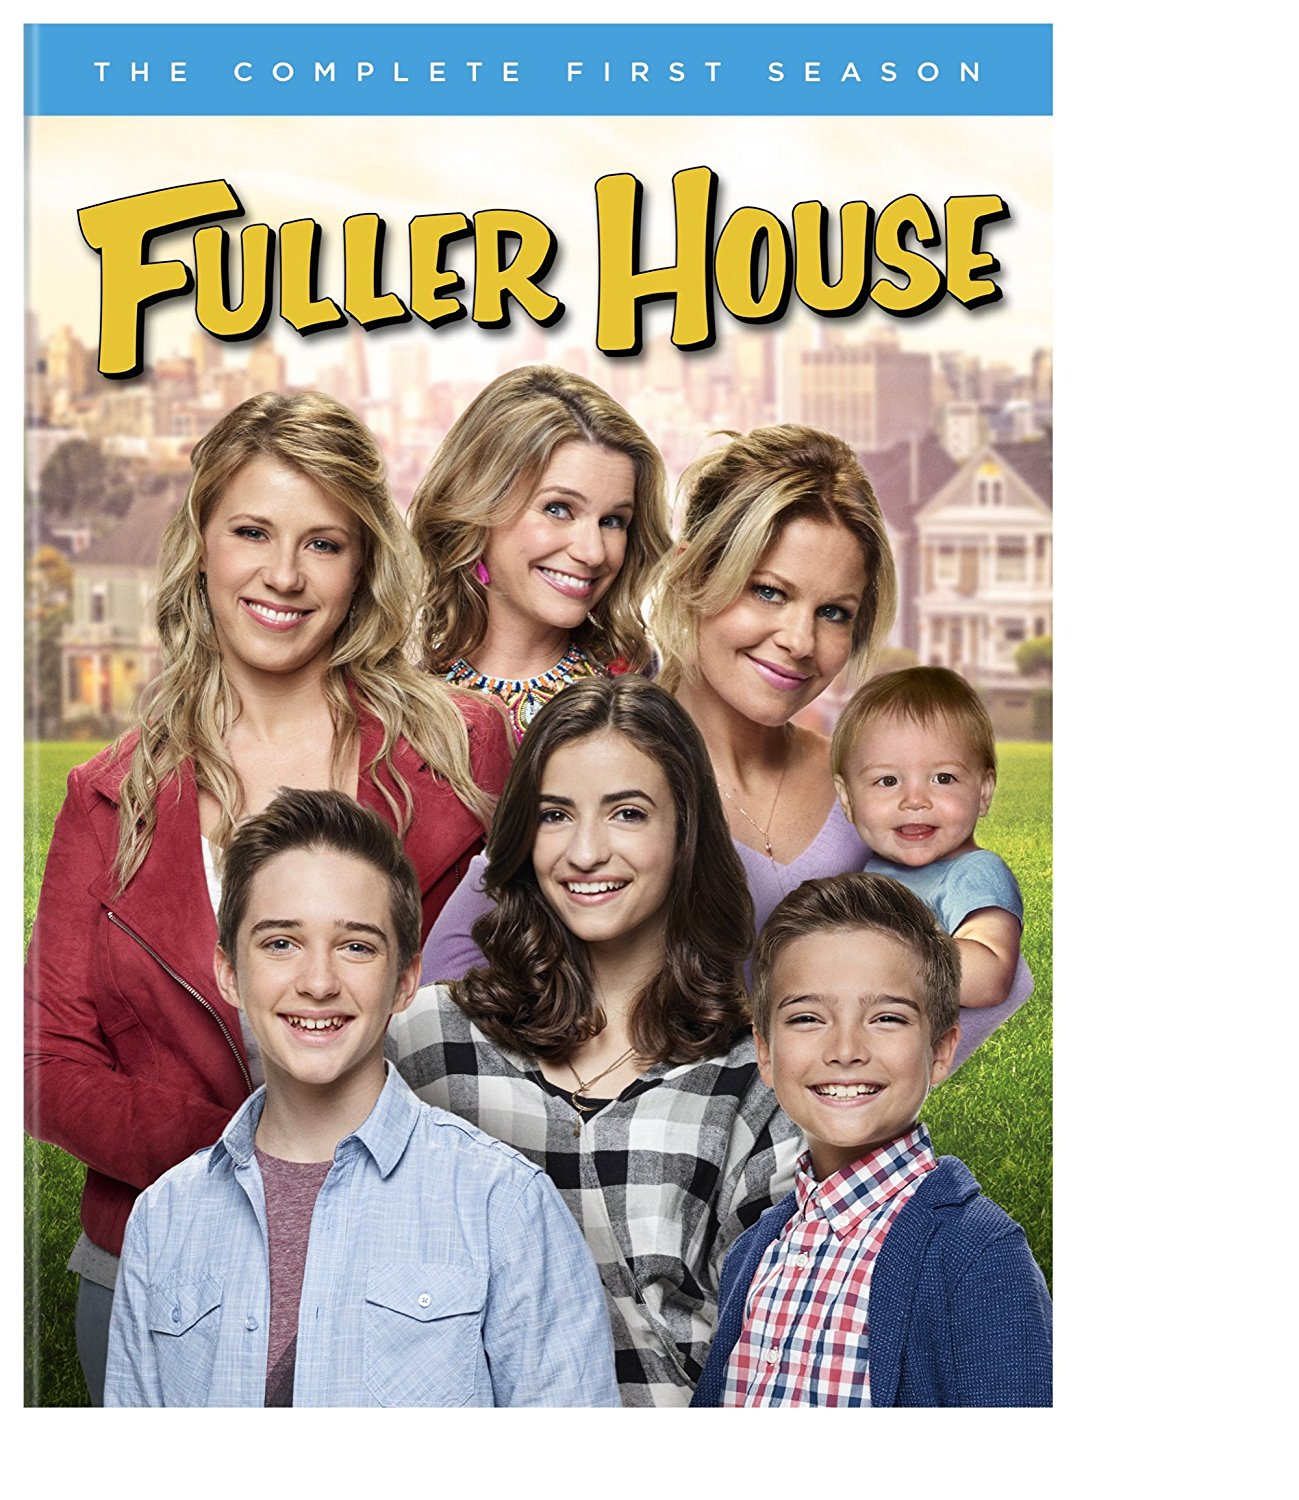 Fuller House [TV Series] - Fuller House: The Complete First Season